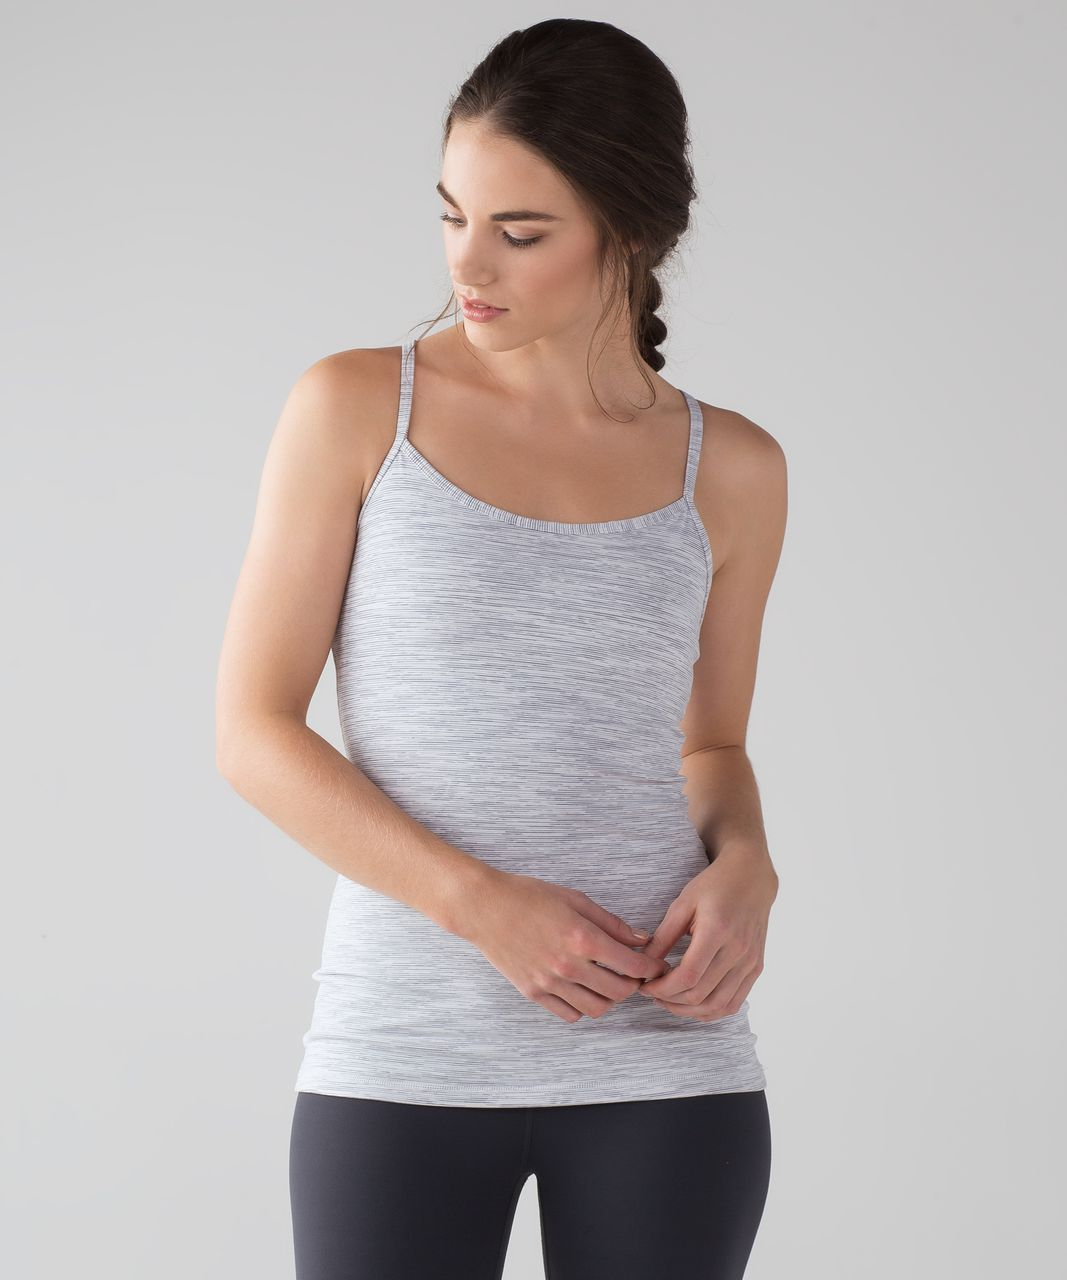 Lululemon Power Y Tank (Luon) - Wee Are From Space Nimbus Battleship